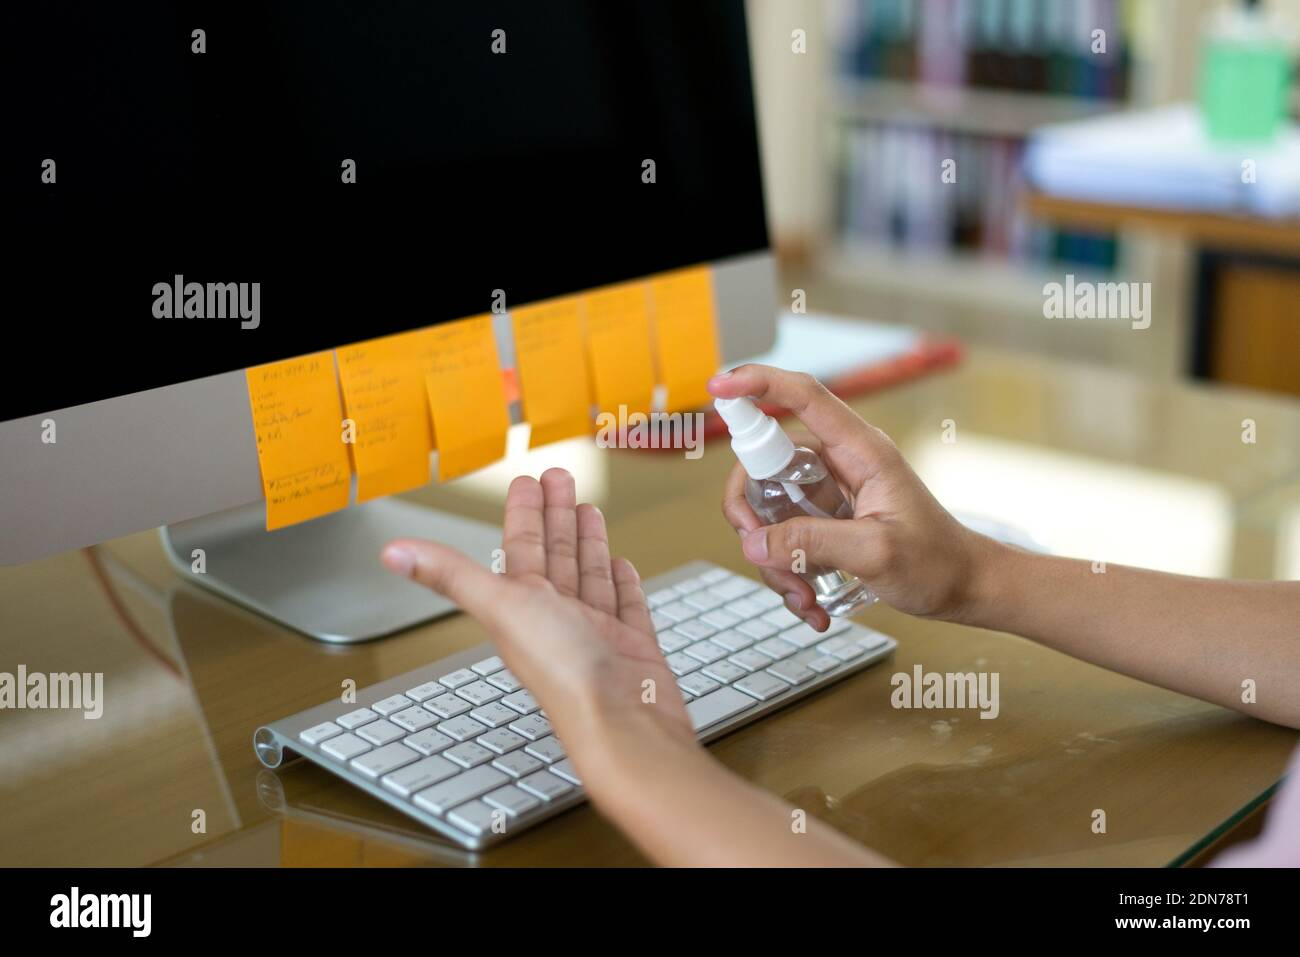 Phone Repair Laptop High Resolution Stock Photography And Images Alamy